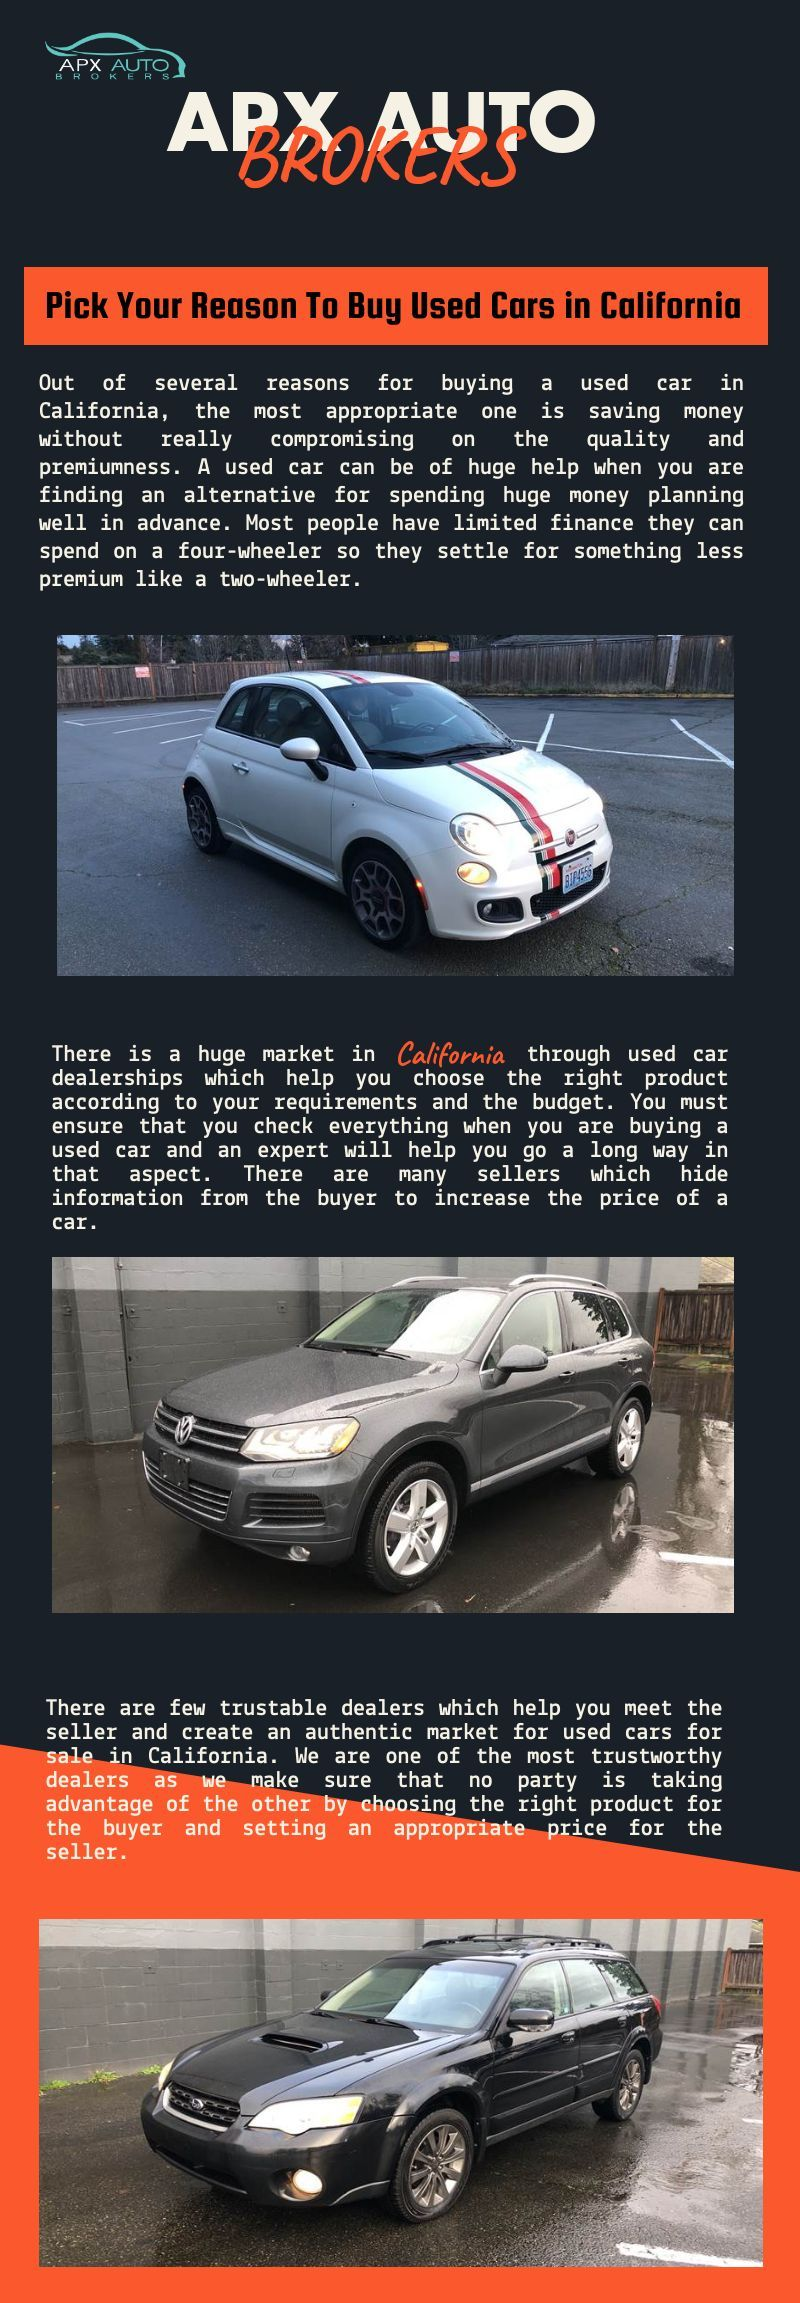 Used Car Dealerships Idaho Falls >> Finding Credible Dealers Of Cars For Sale In Idaho Falls Is